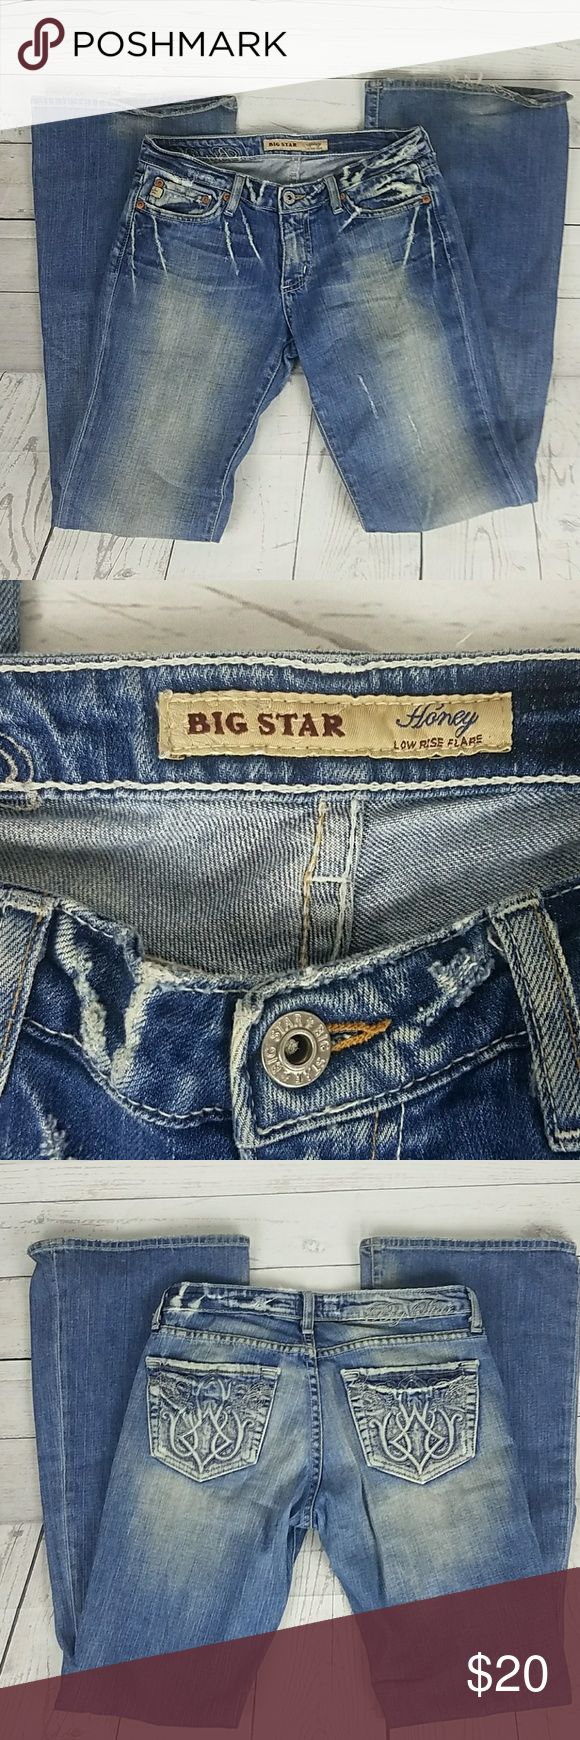 Women's Big Star Jeans Flare Low Rise Size 27R These Women's Big Star Jeans are in good condition. Gently used. These are the Honey model of Big Star. Low Rise Flare. Size 27R Inseam 33 Rise 7 inches Big Star Jeans Flare & Wide Leg